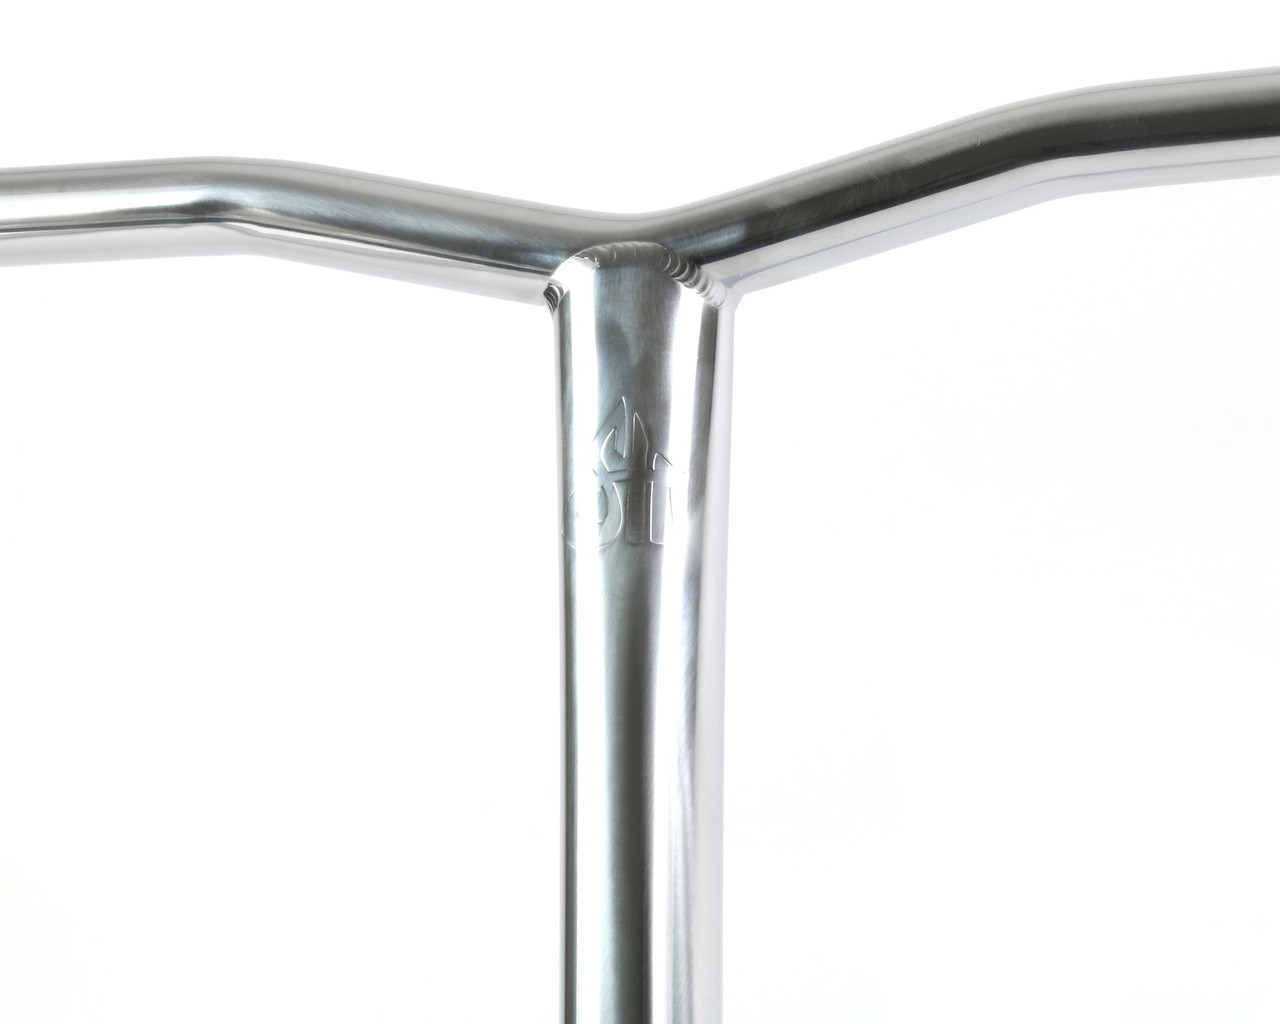 Scooter-Hut-Titanium-Bar-Model-S-560mm-Oversize-Pro-Scooter-Bars